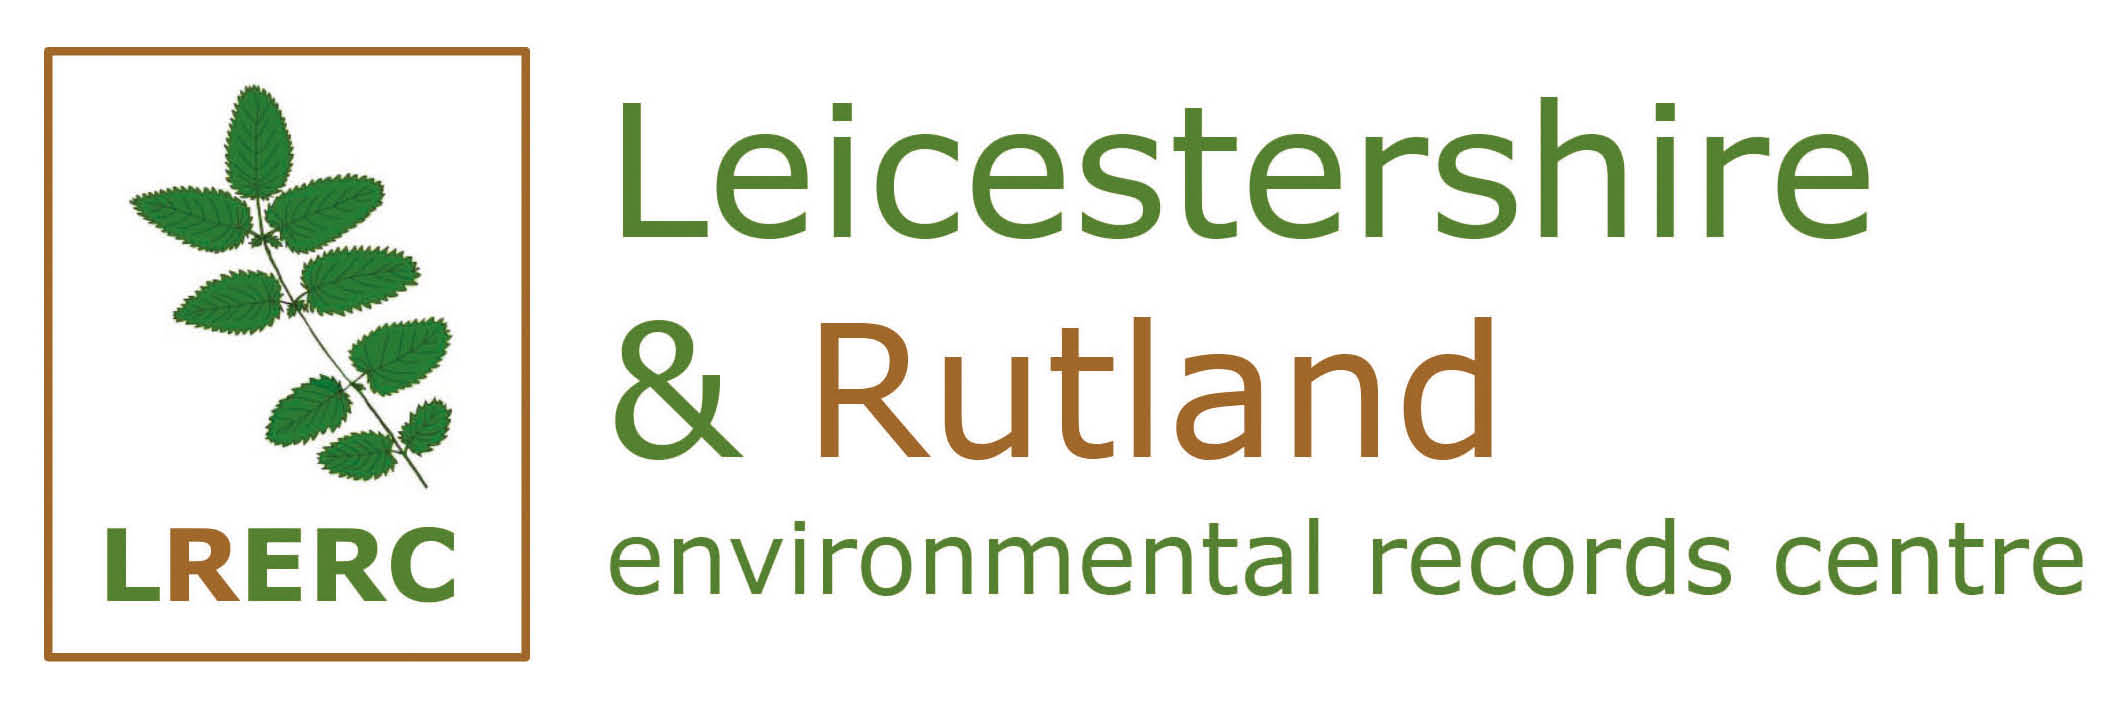 Leicestershire and Rutland Environmental Records Centre logo